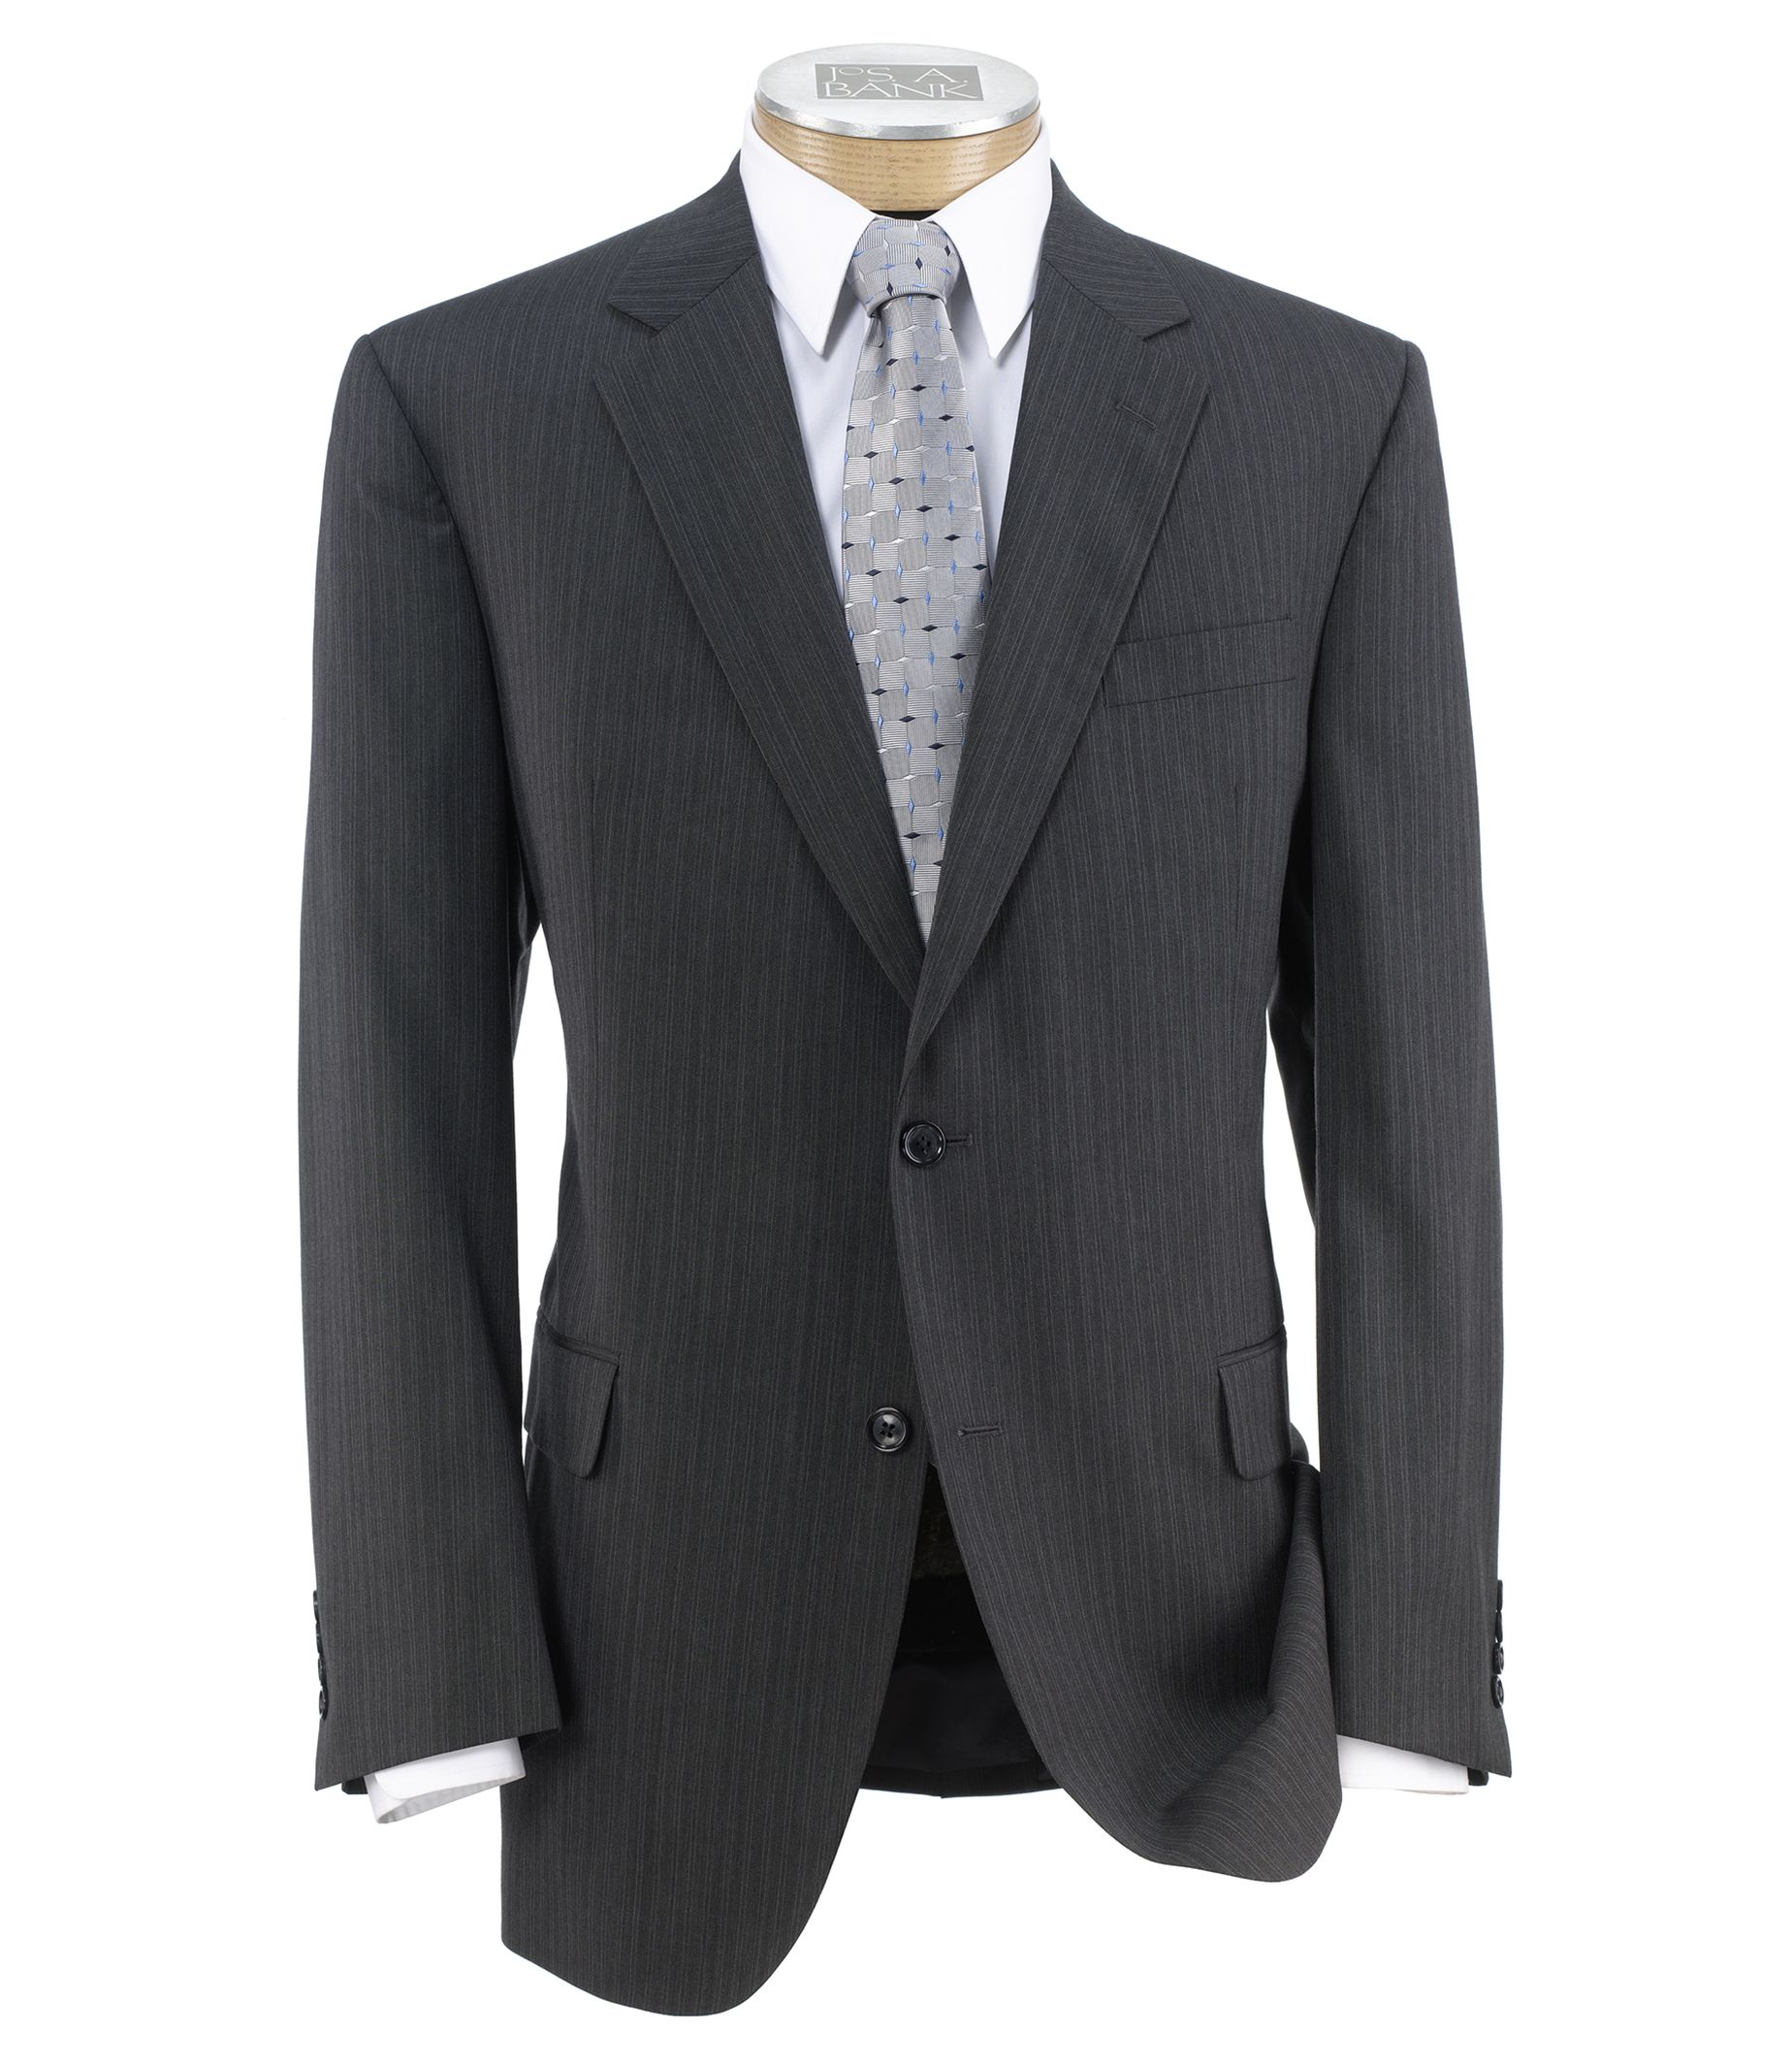 Executive 2-Button Wool Suit with Plain Front Trousers - Charcoal Double Stripe